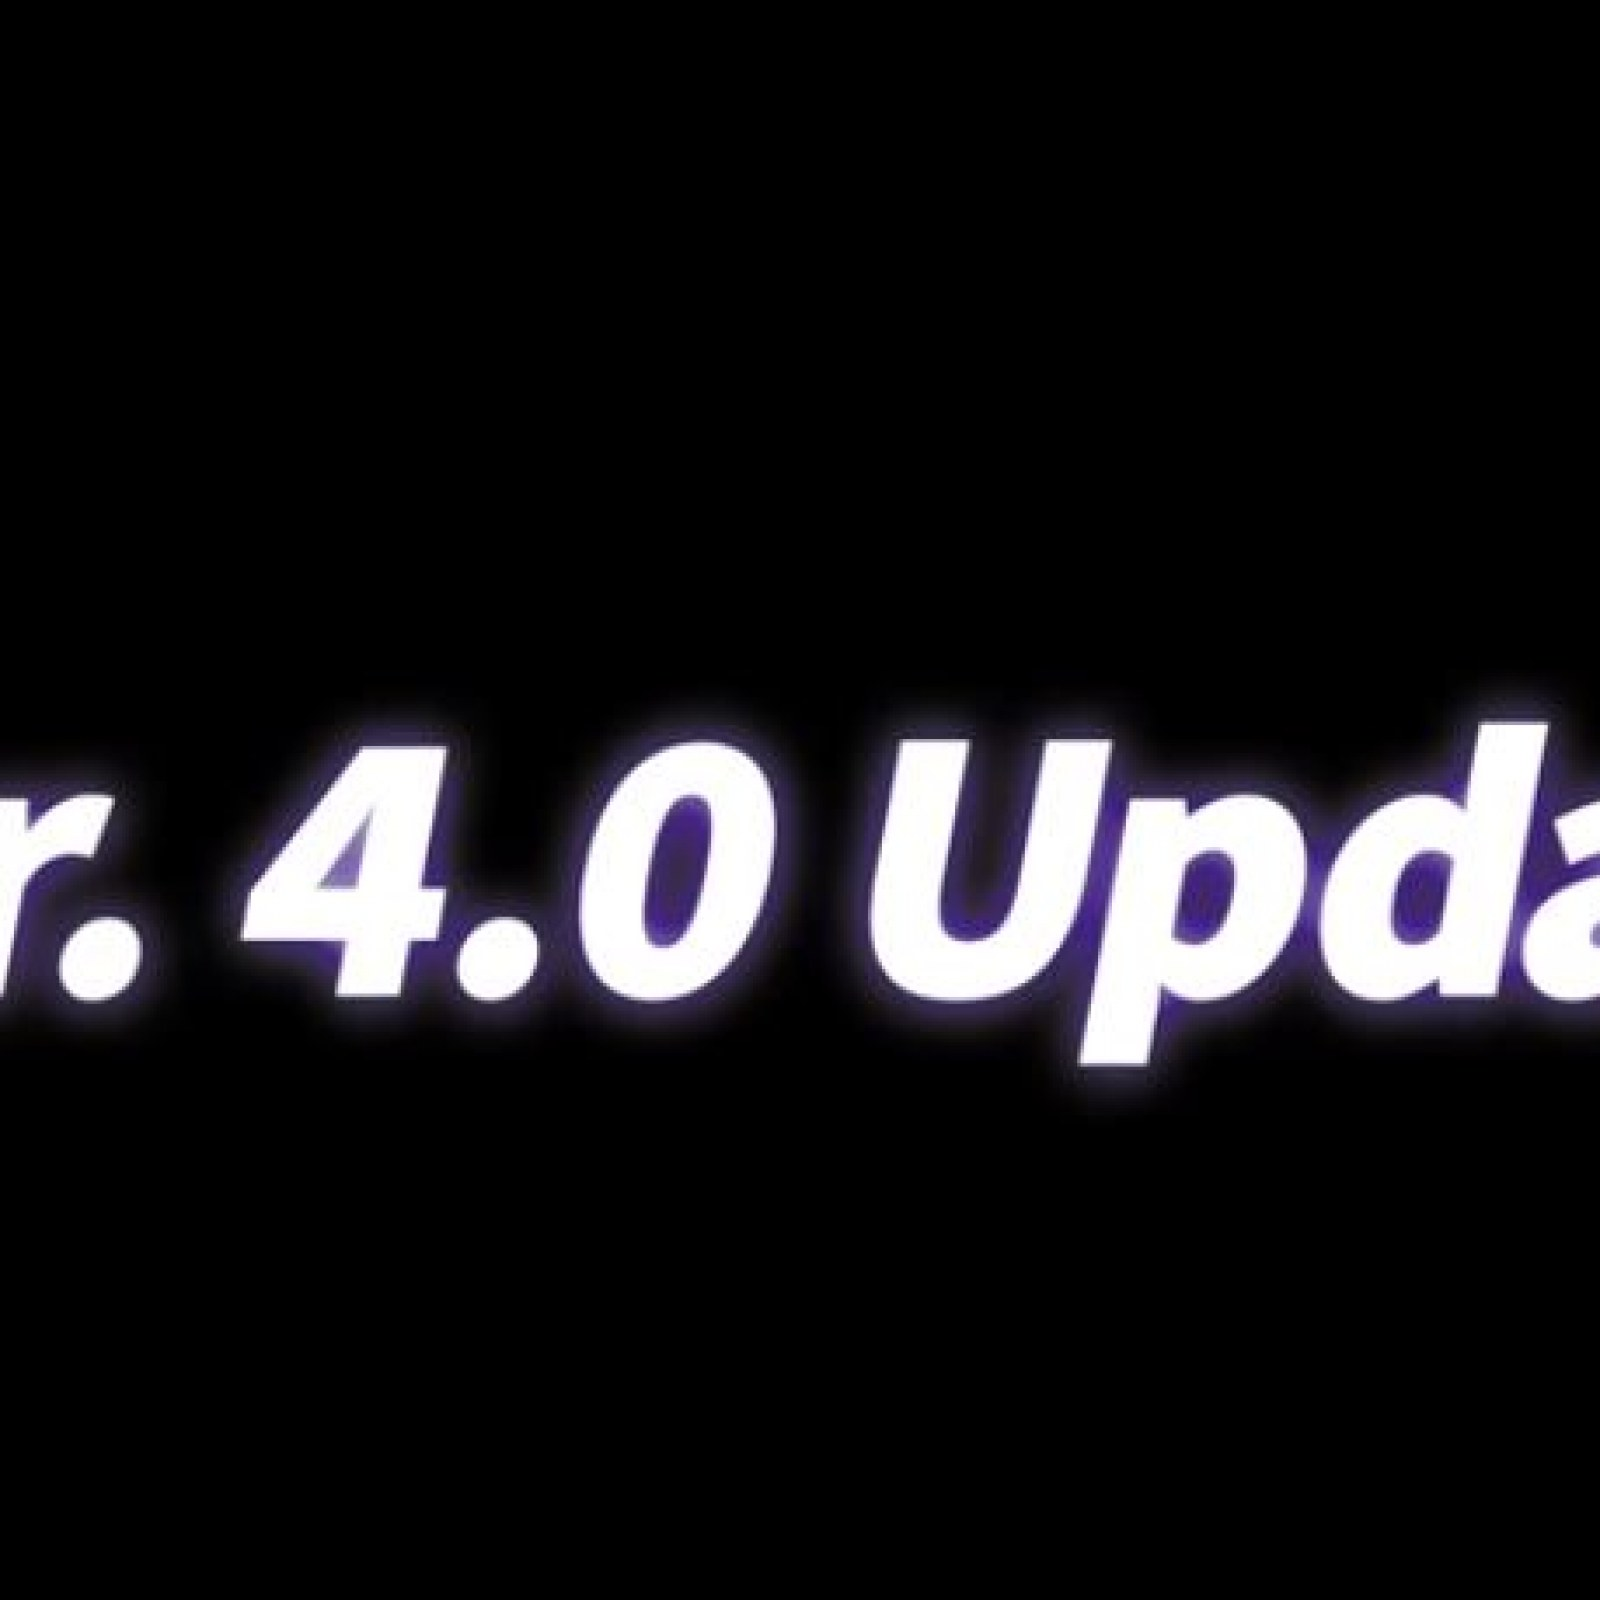 Smash Ultimate' Version 4 0 Update - Full Patch Notes